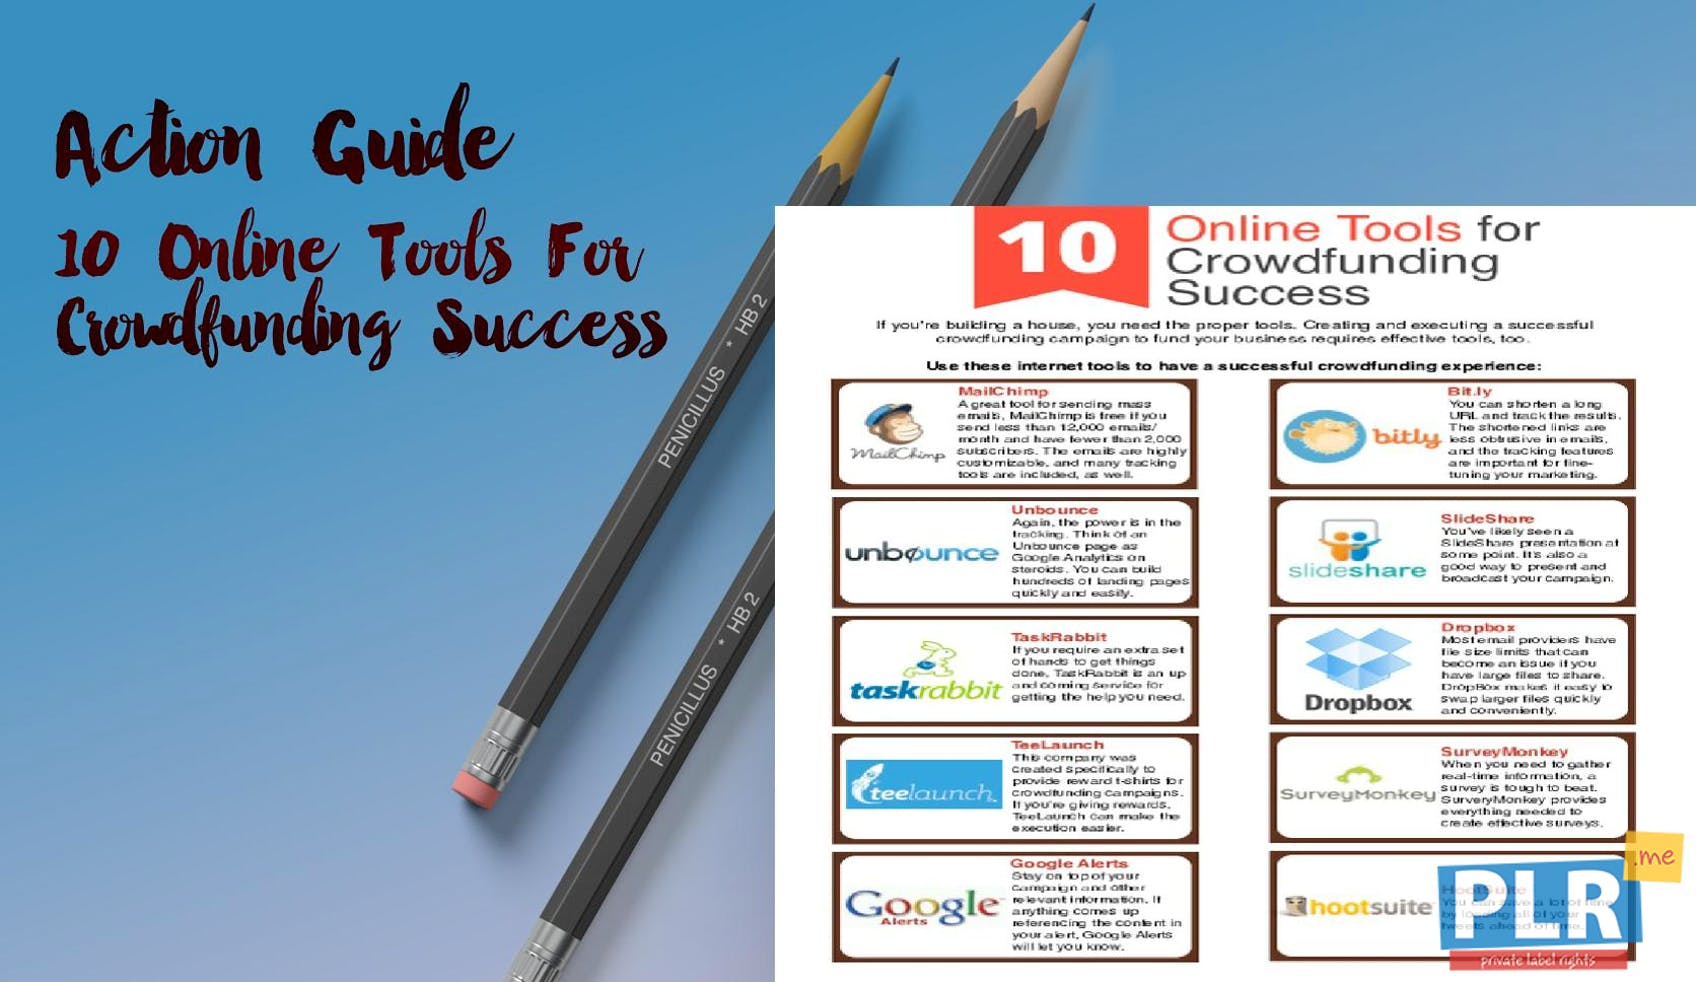 10 Online Tools For Crowdfunding Success